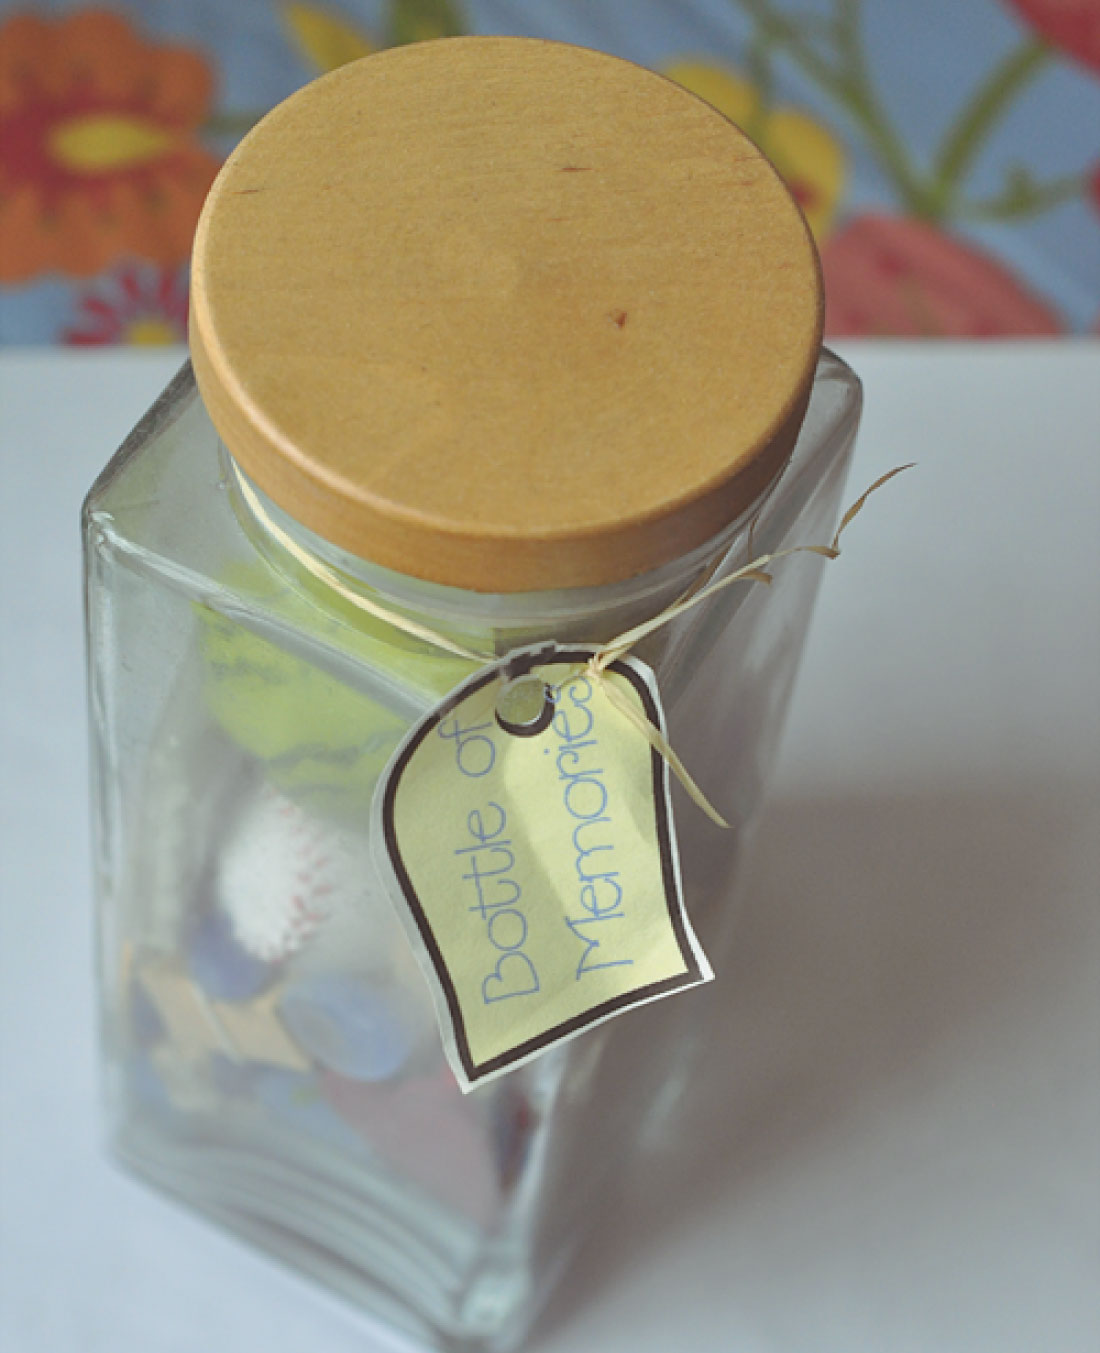 Sentimental gifts - make this bottle of memories for someone you love!